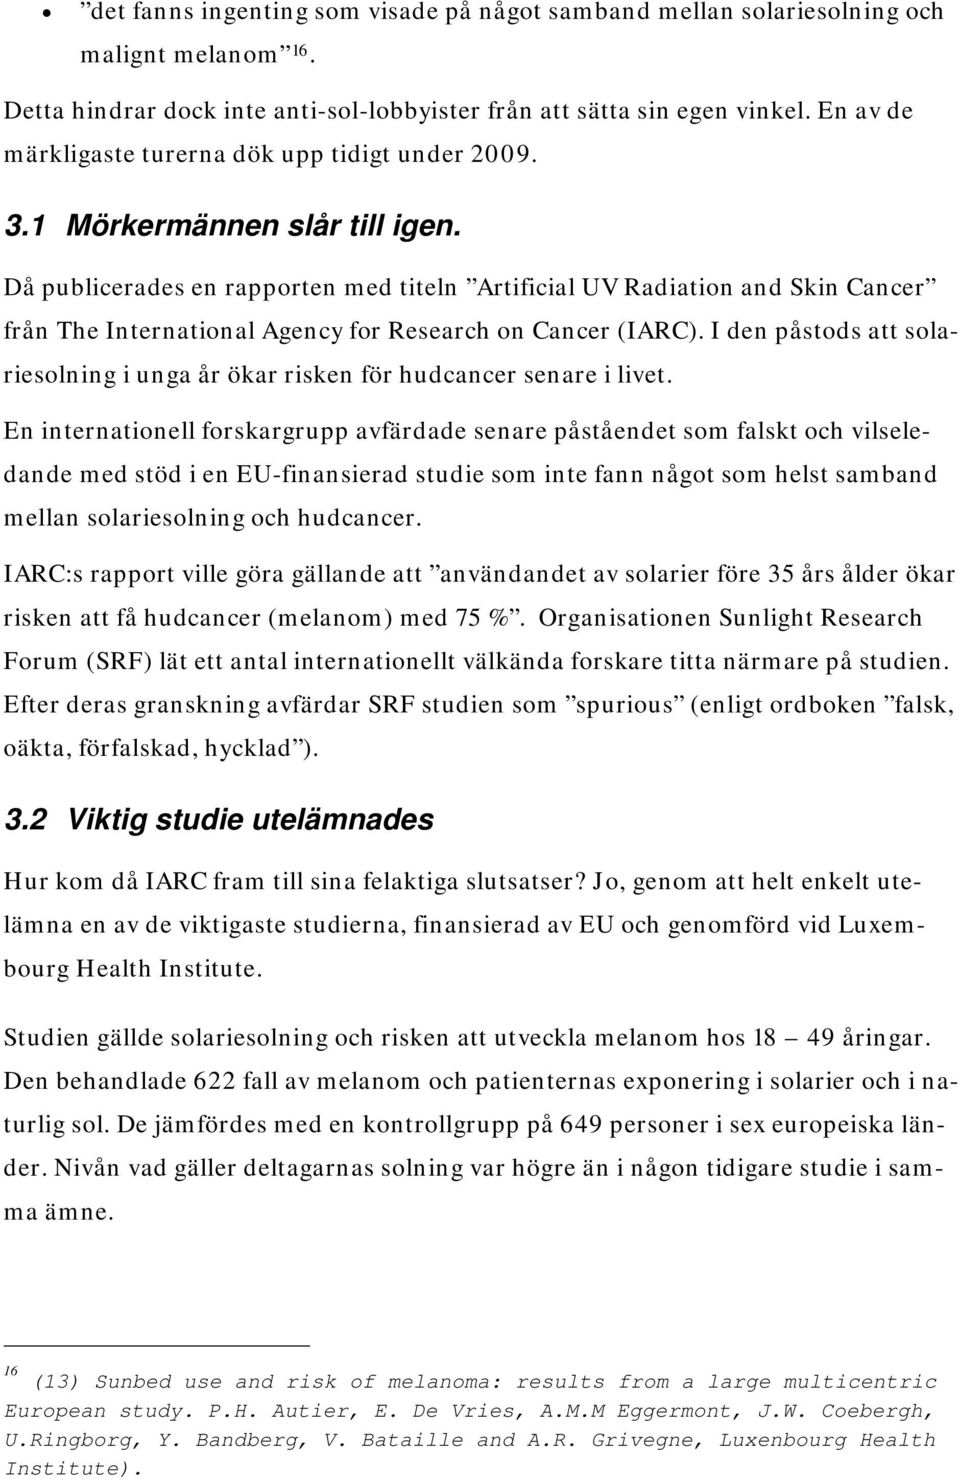 Då publicerades en rapporten med titeln Artificial UV Radiation and Skin Cancer från The International Agency for Research on Cancer (IARC).